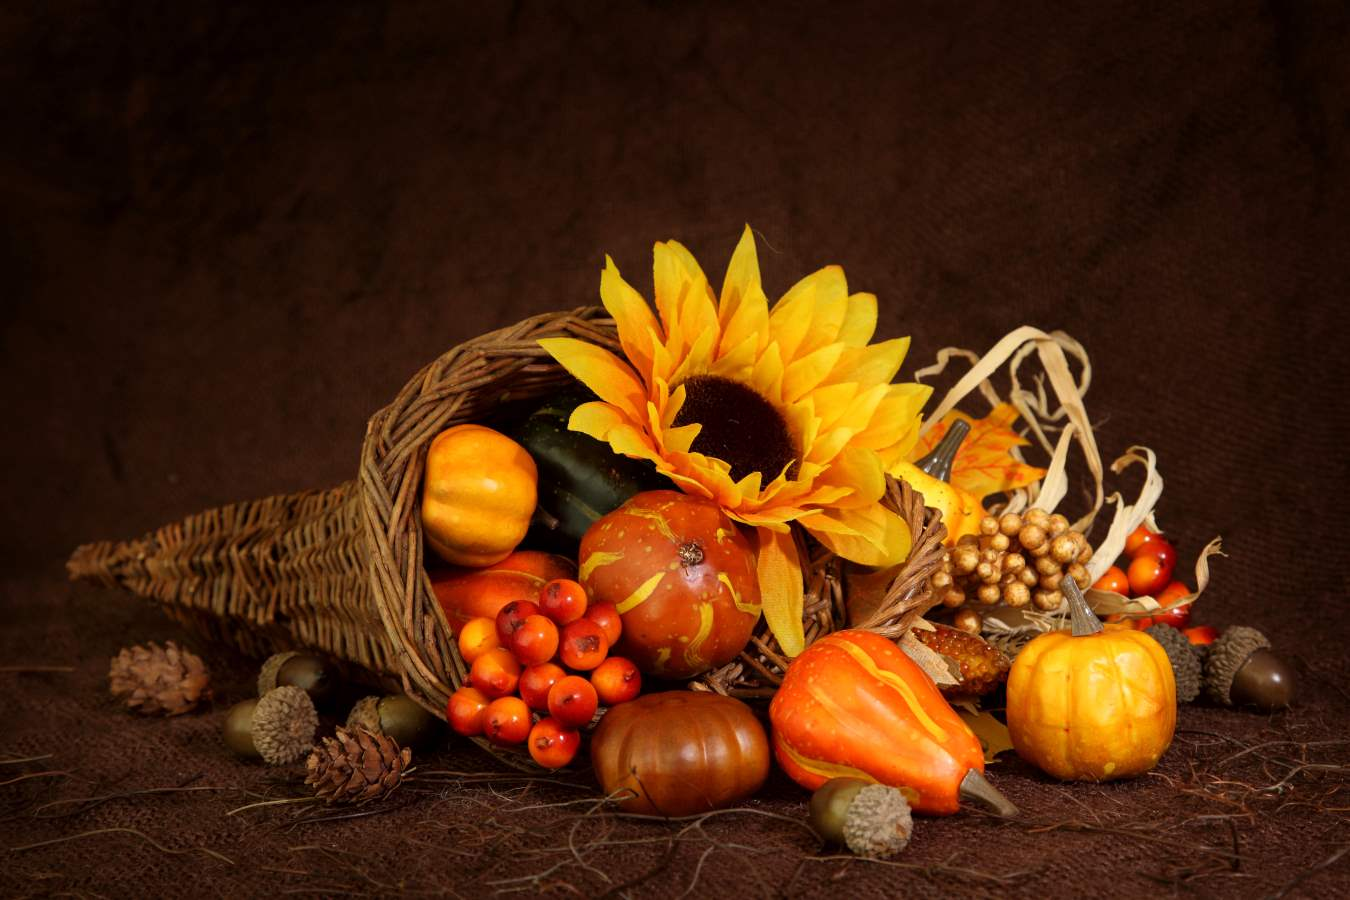 Fall Morning Wallpapers For Samsung 4 60 Hd Happy Thanksgiving Wallpapers And Printable Cards